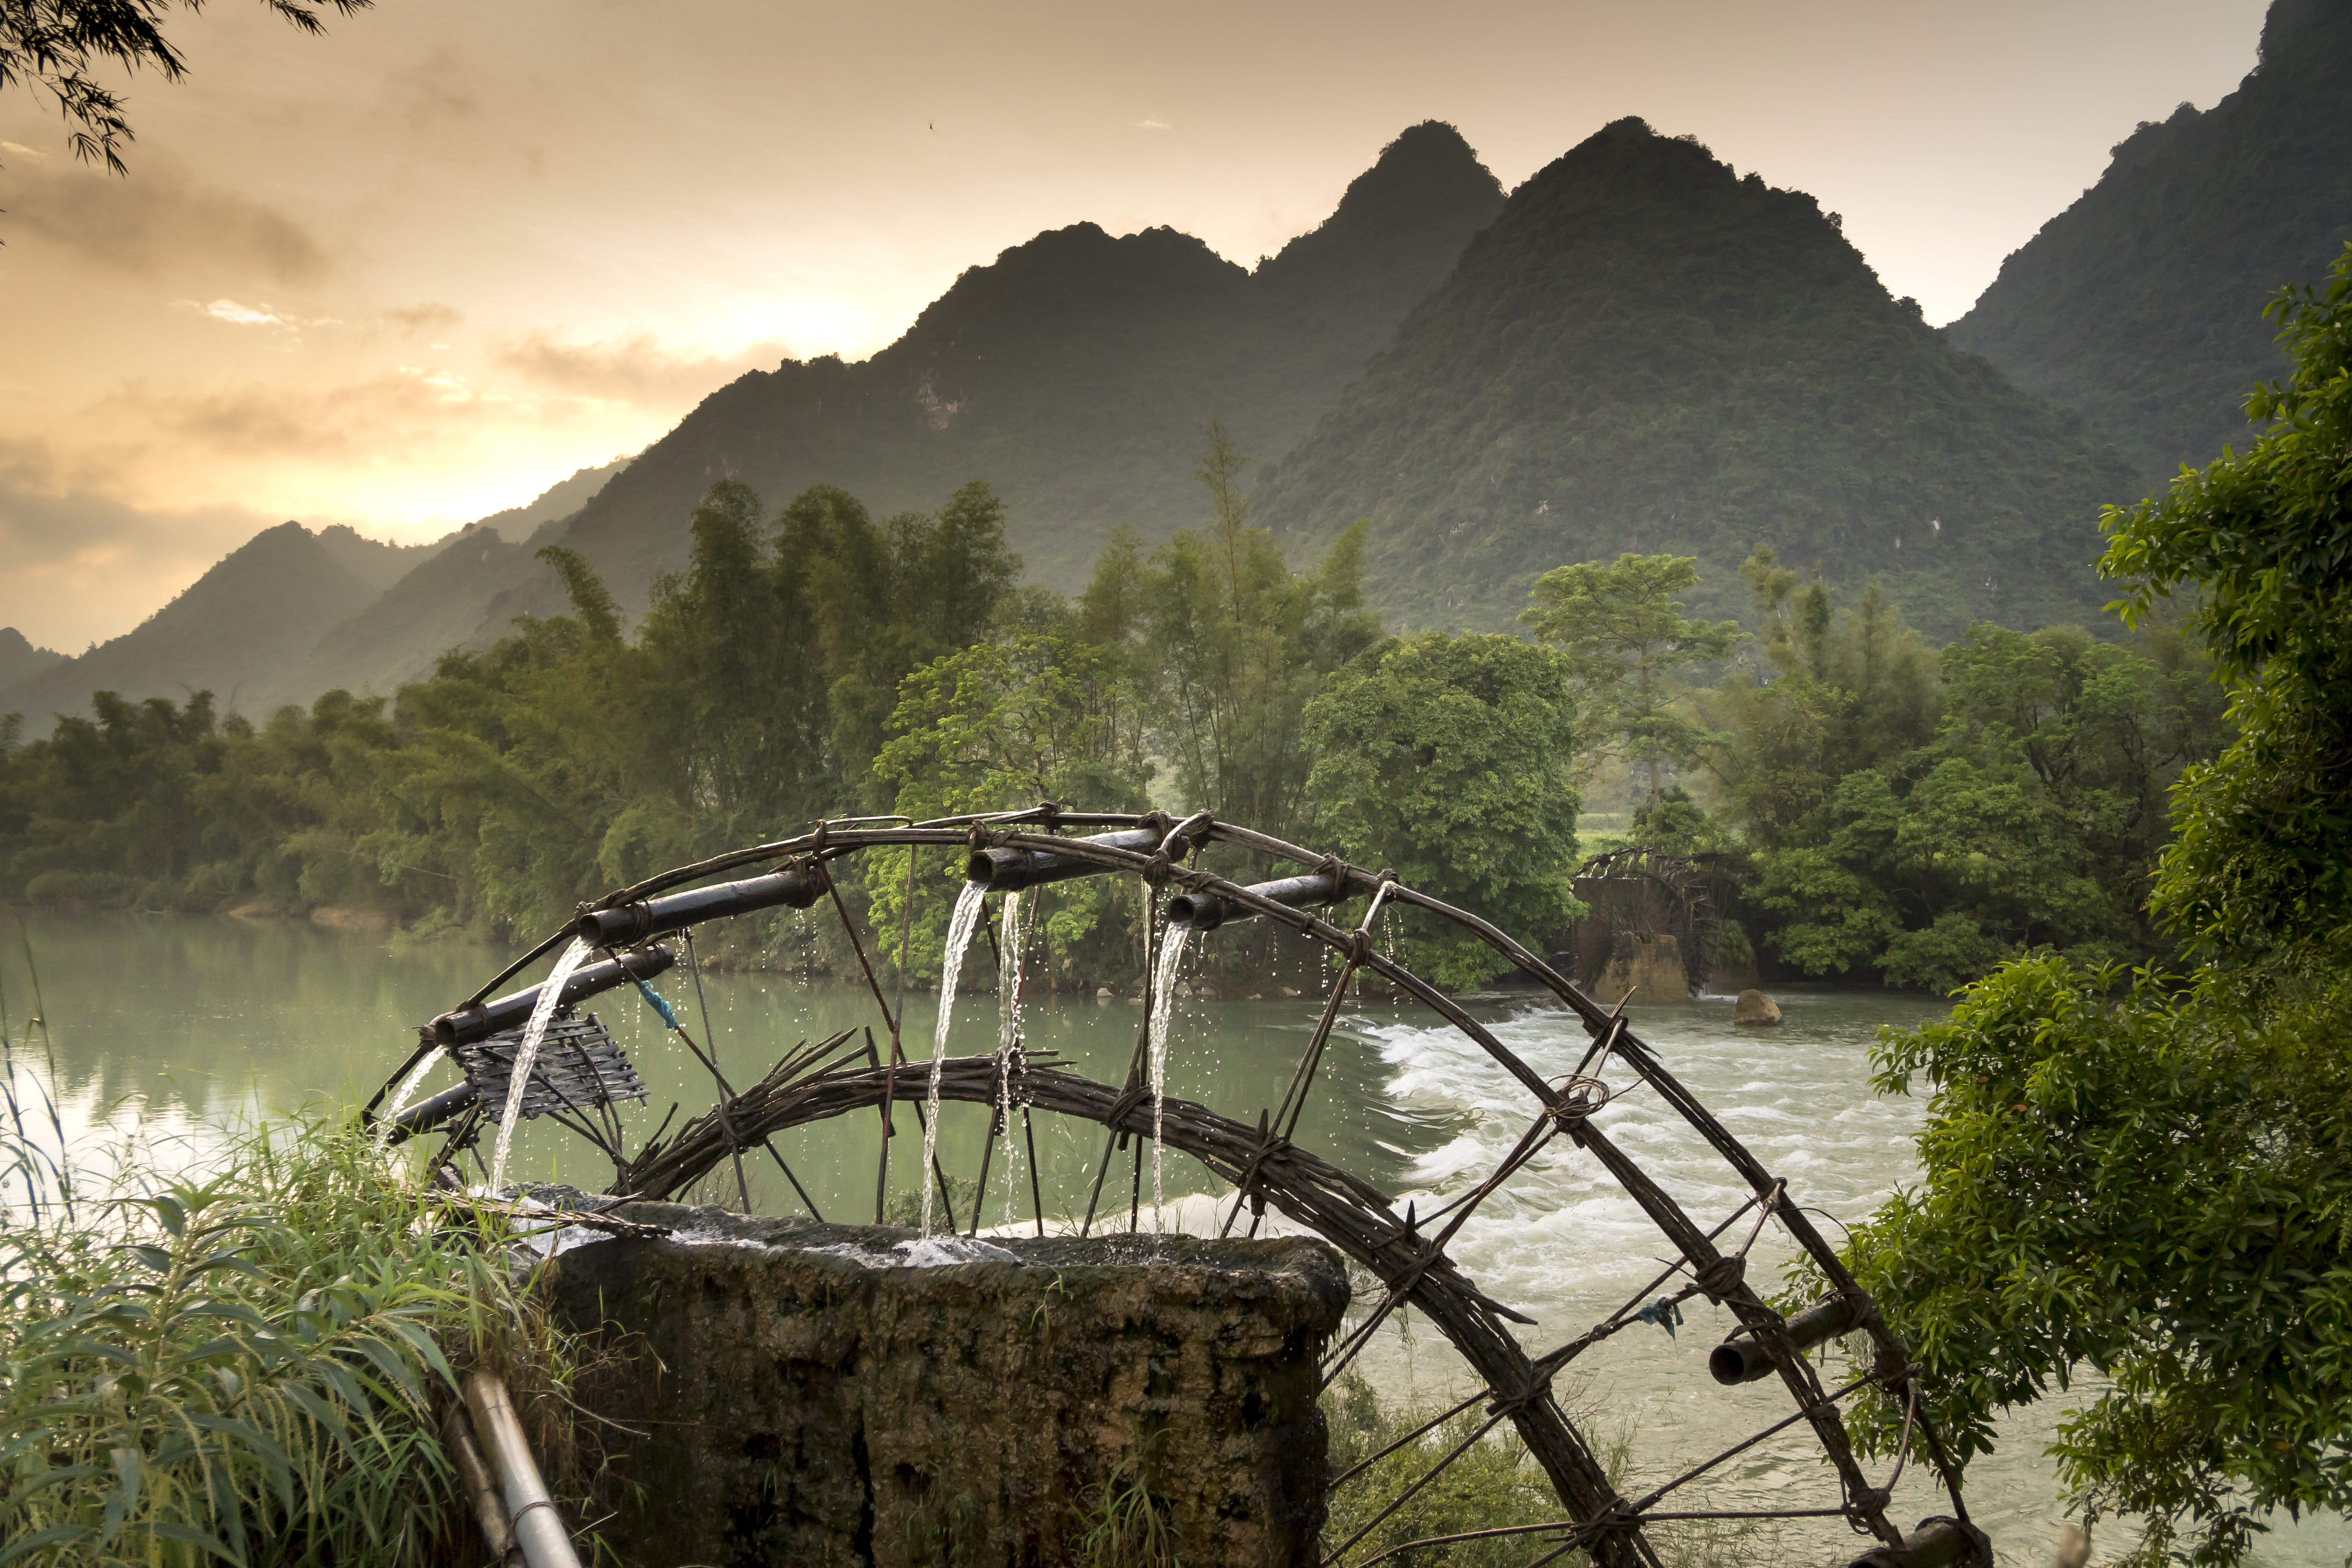 Water Wheel by the River